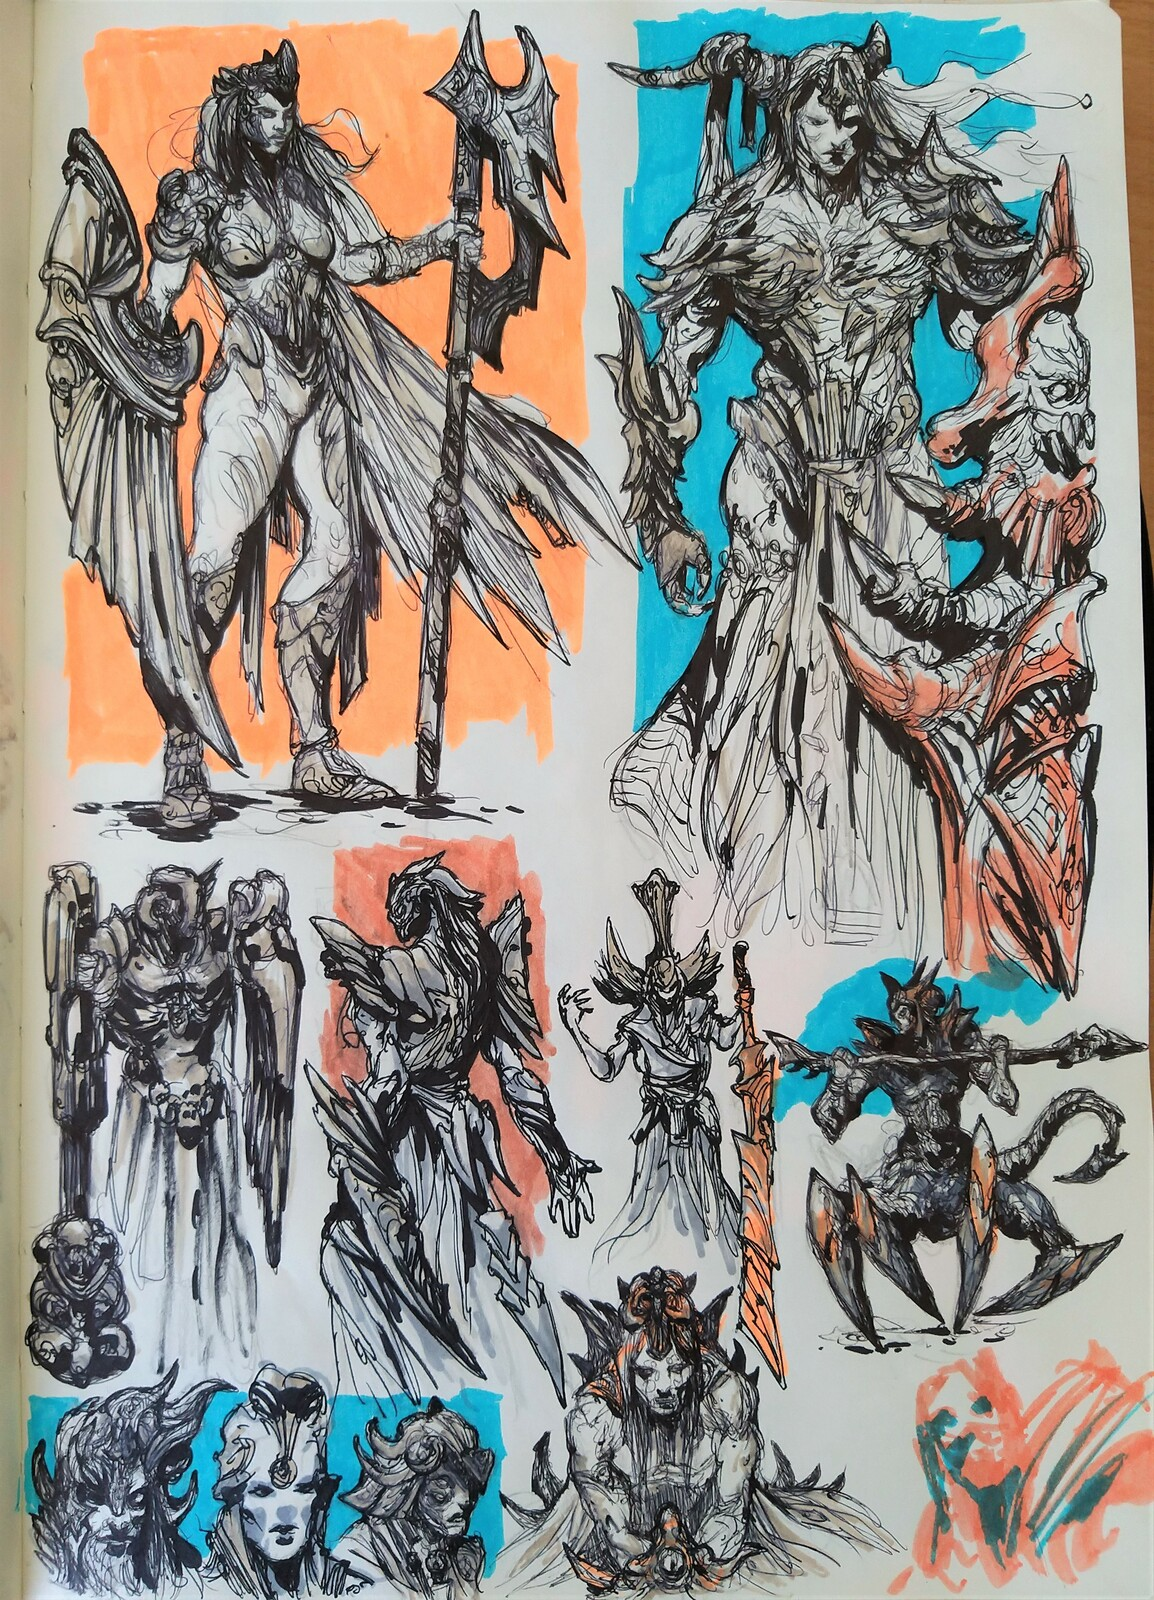 Sketchbook Traditional Drawings/ Concept designs